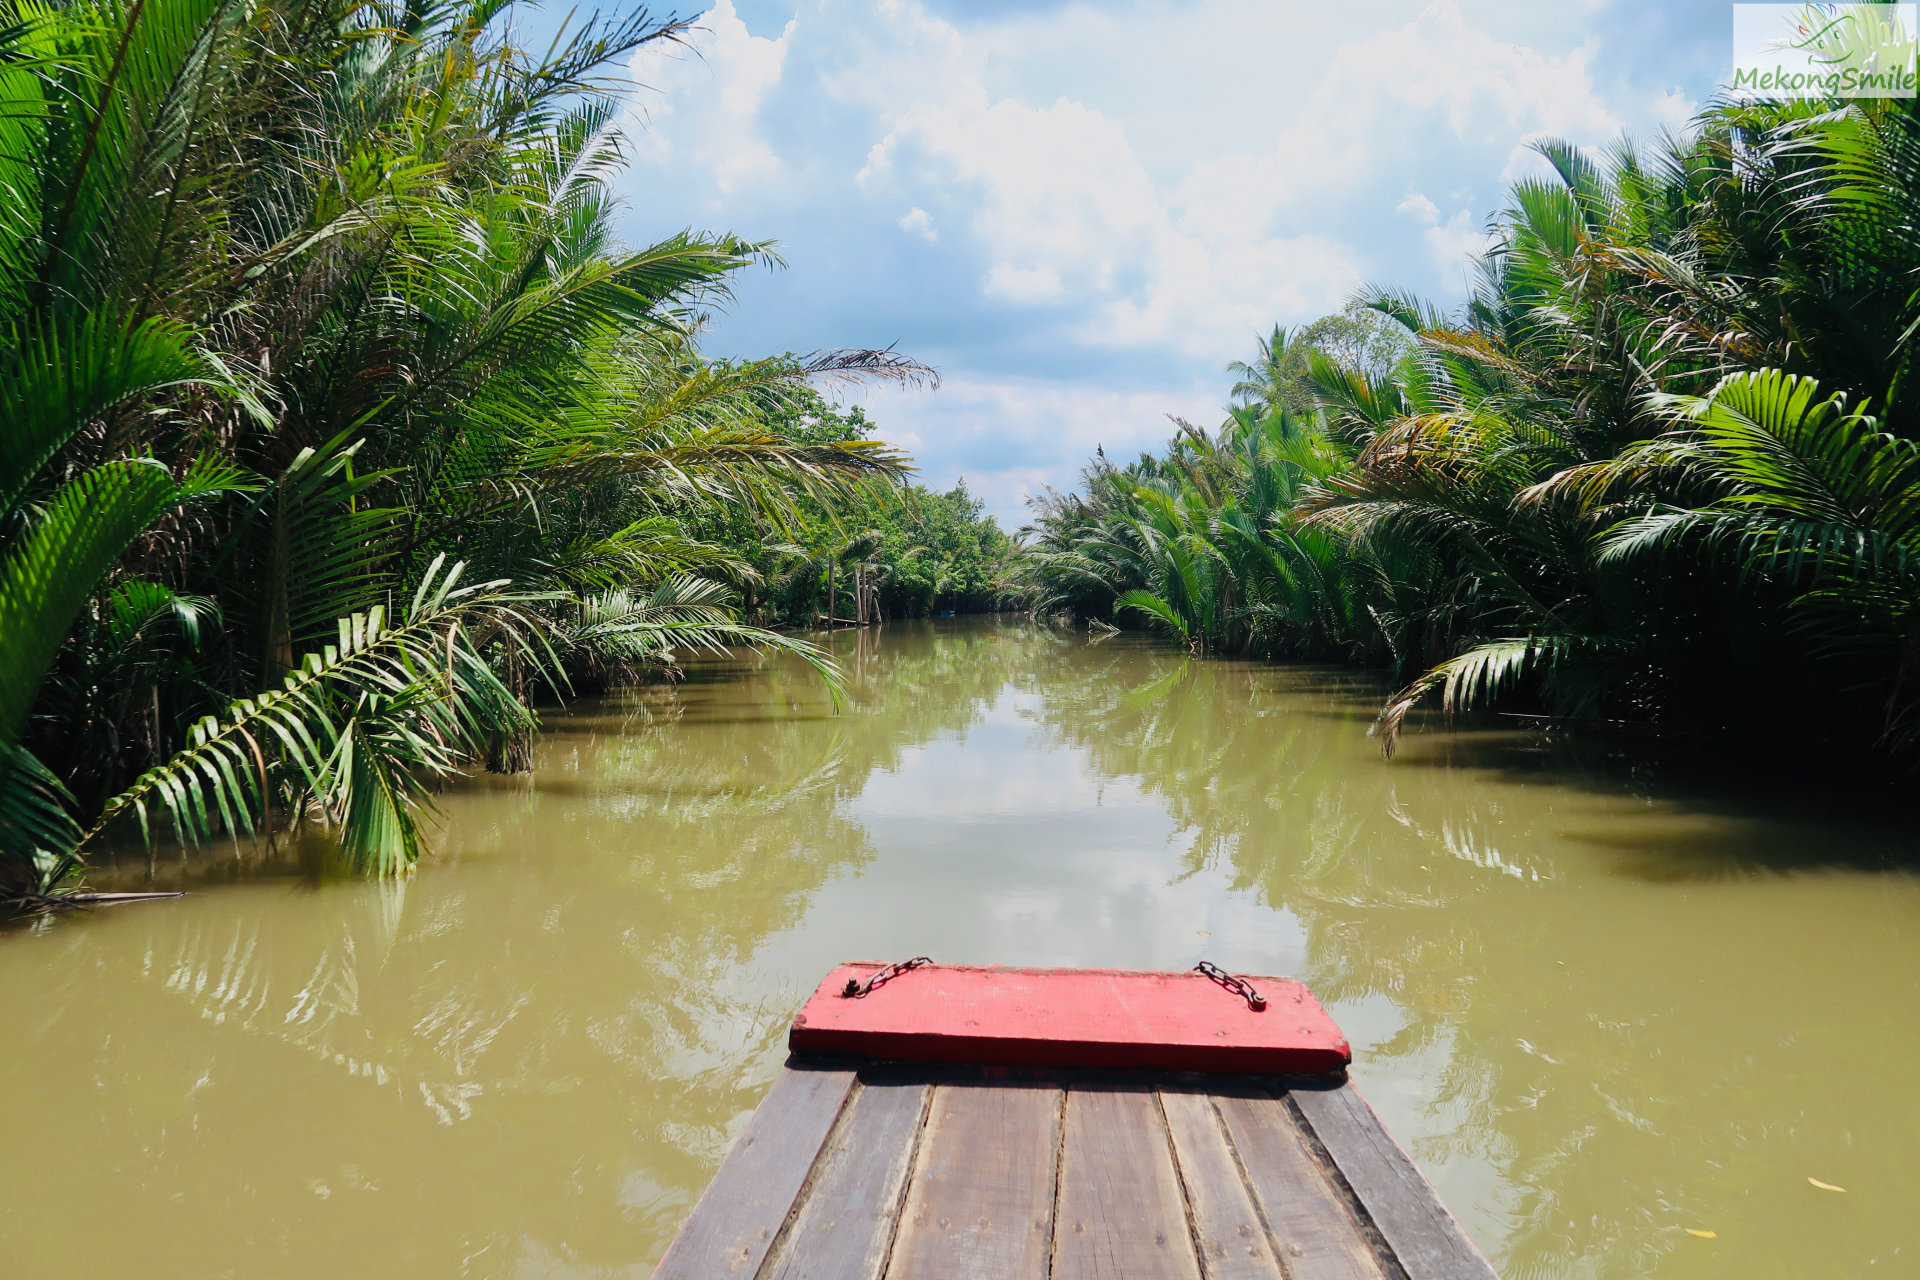 Beautiful small water coconut canal in Ben Tre - Mekong deltta Ben Tre 1 day tour